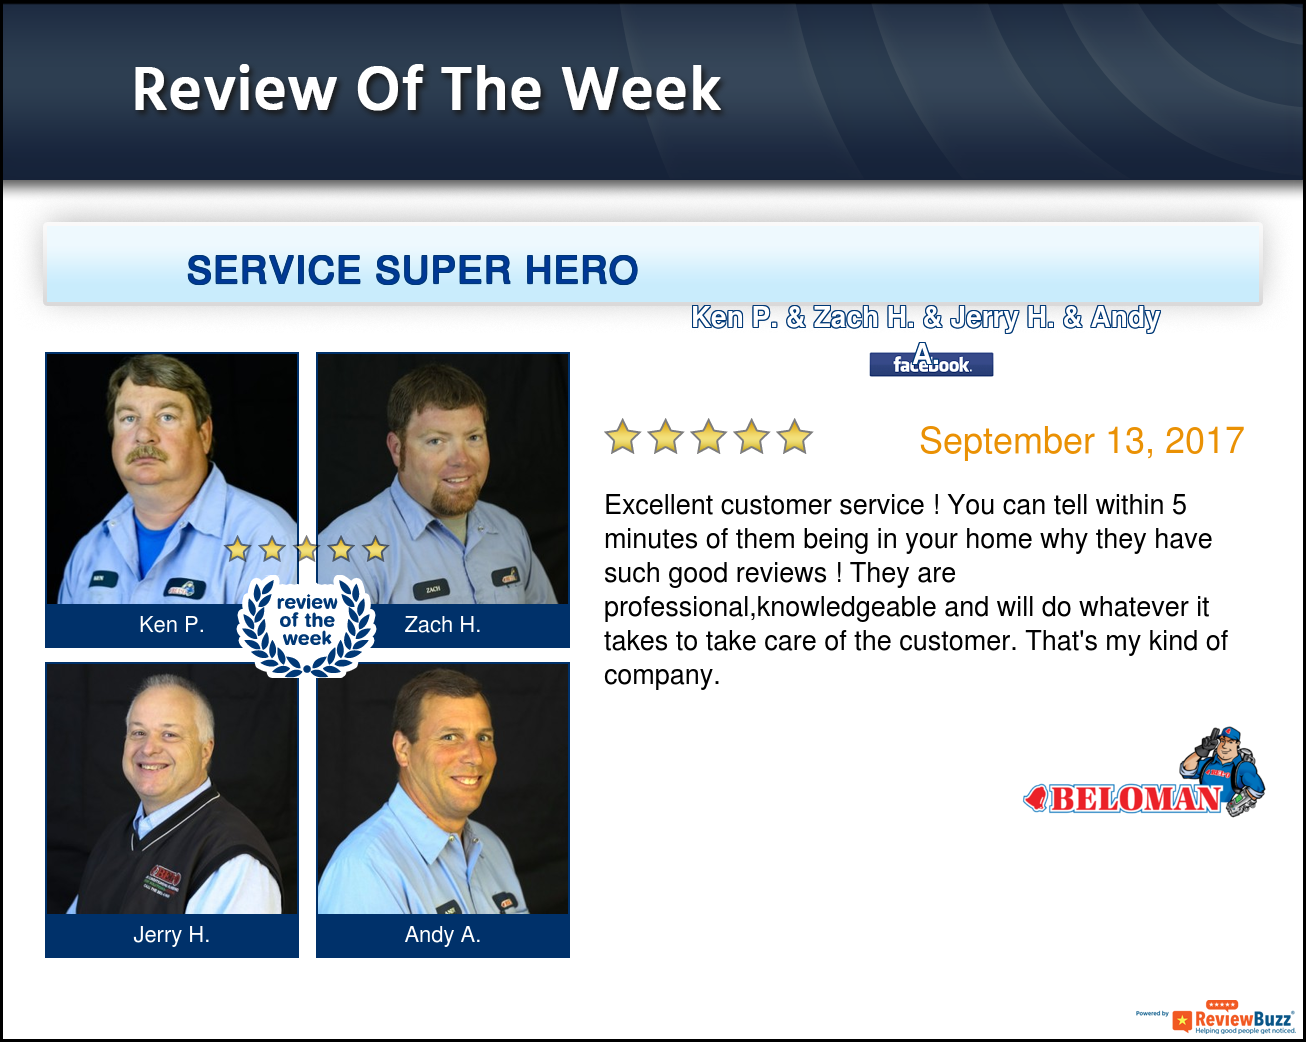 Review Of The Week Teambeloman Happycustomers Belleville Excellent Customer Service Heating And Cooling